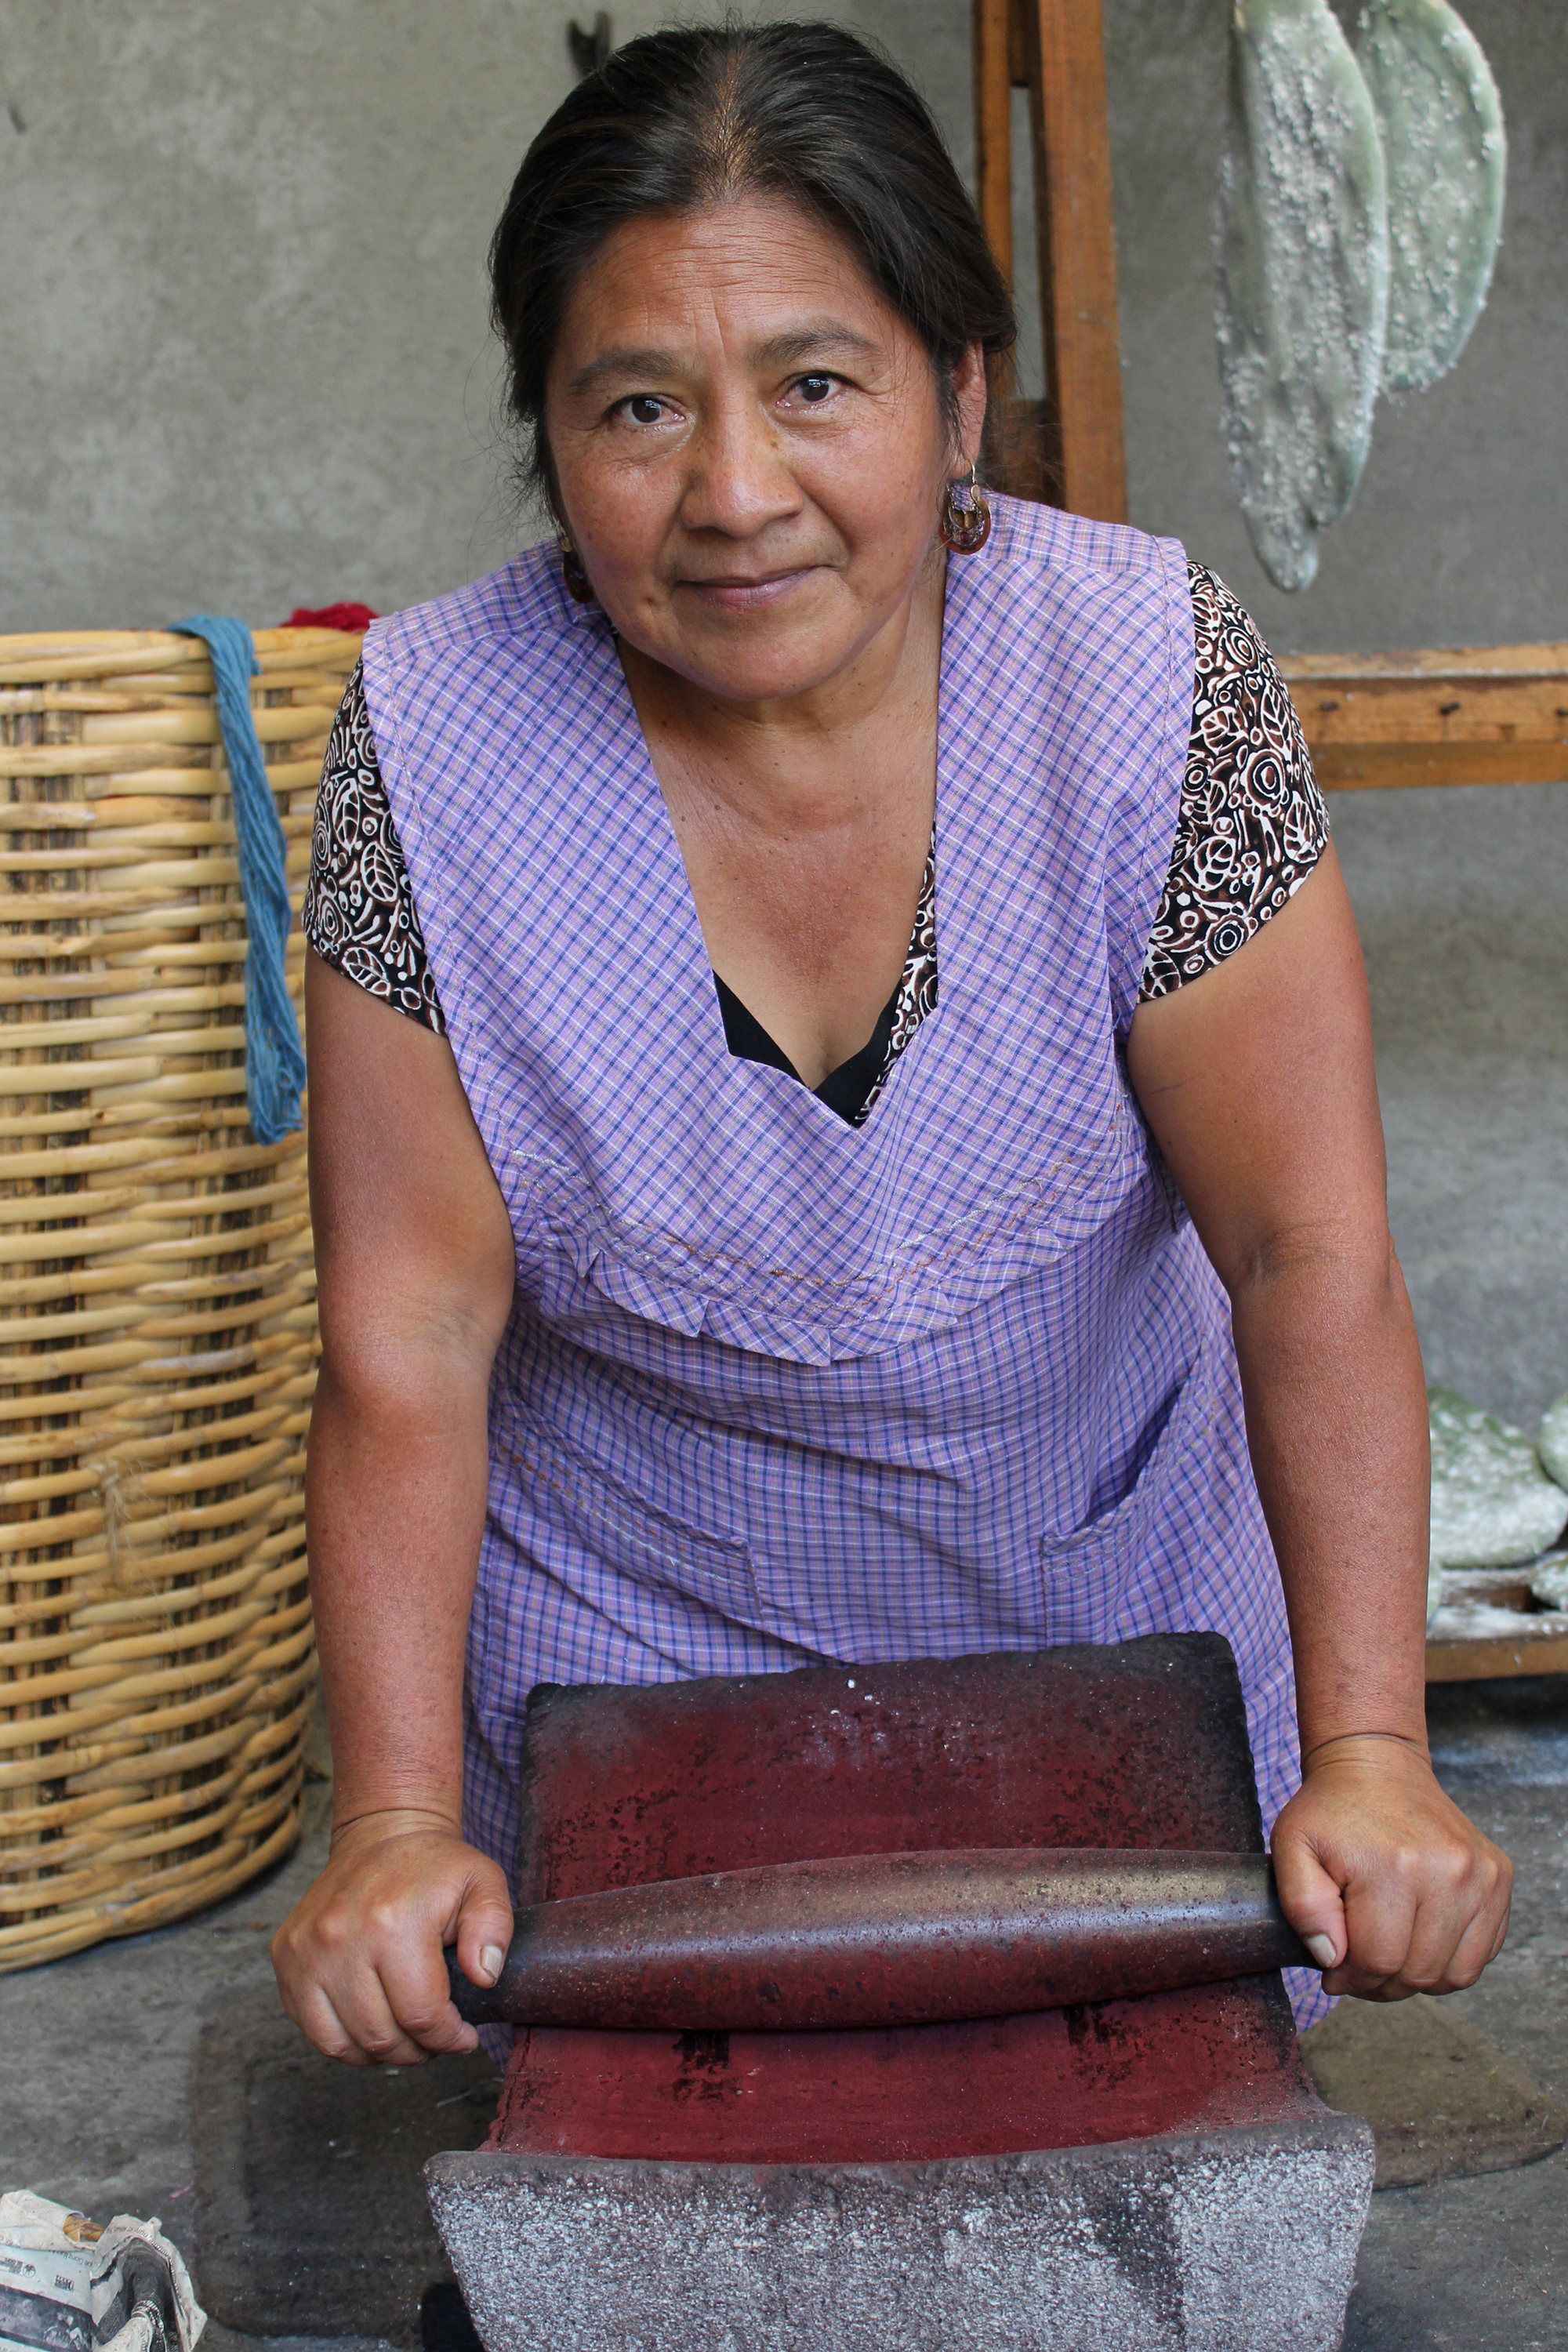 Rafaela grinds cochineal on metate